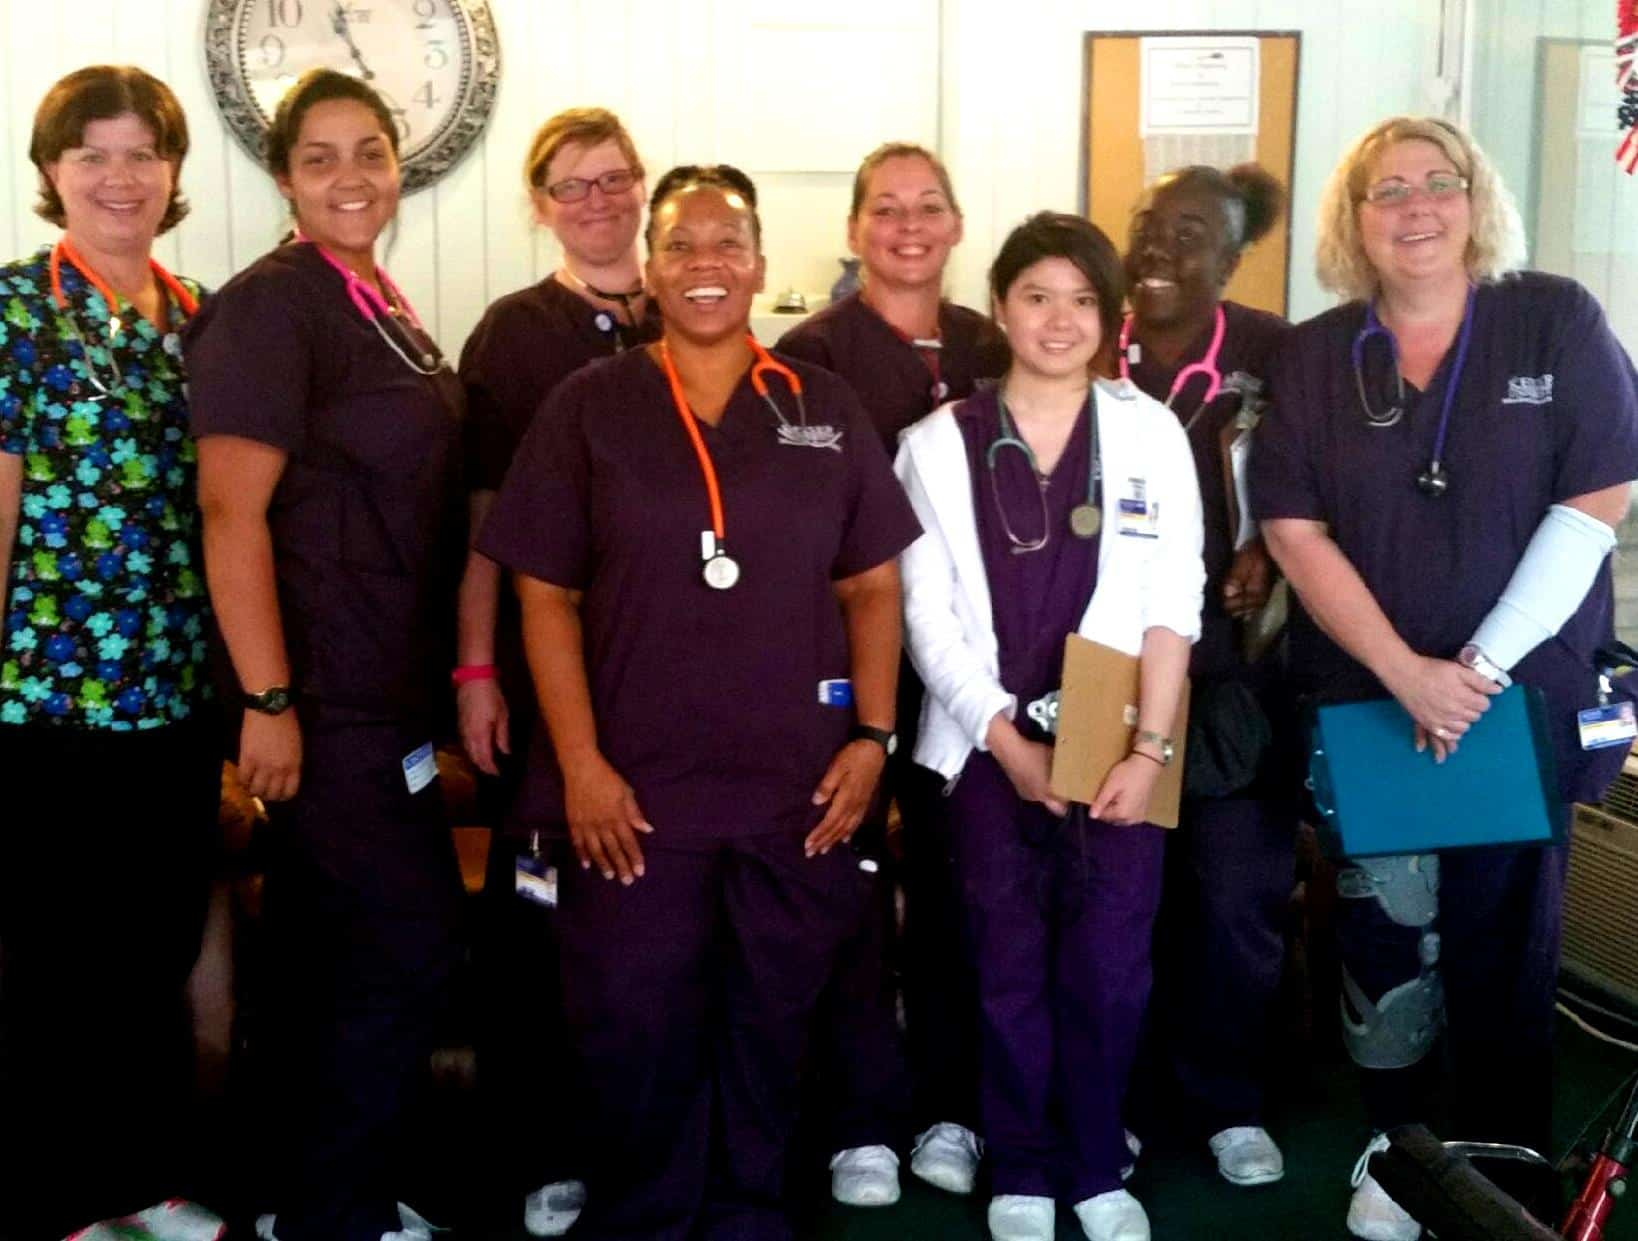 Medical Assistant Students from Daytona Beach Help in Community